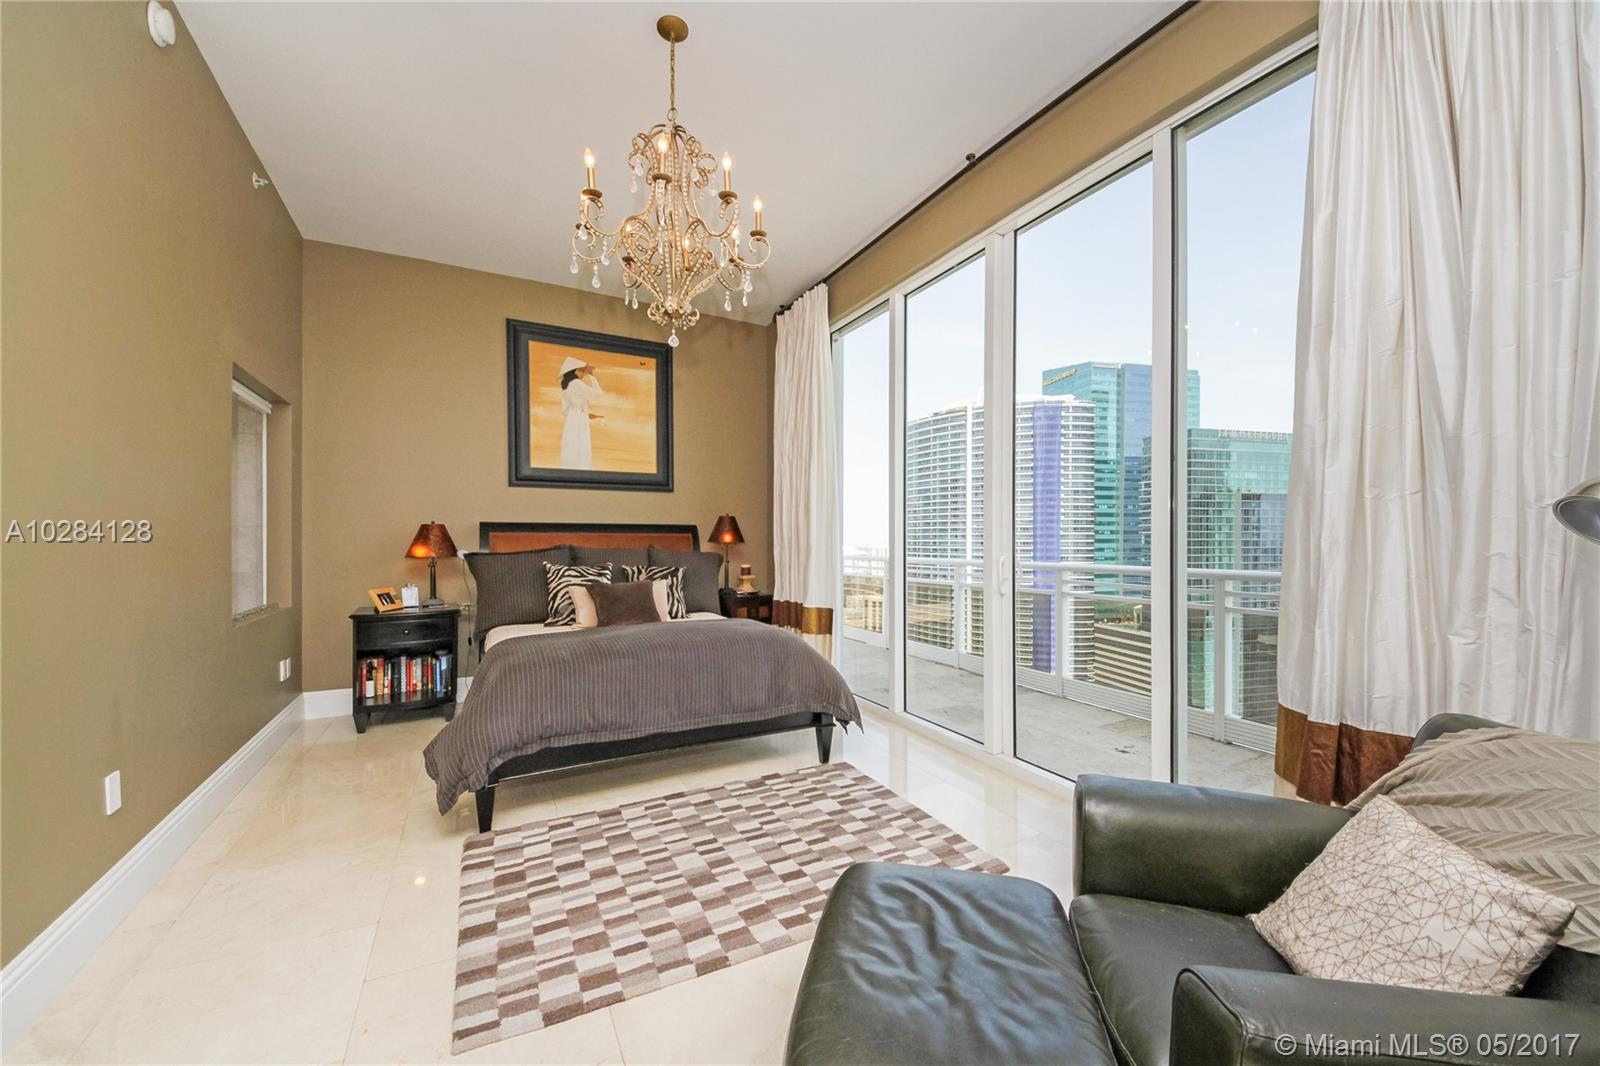 901 Brickell key blvd-PH3705 miami--fl-33131-a10284128-Pic24